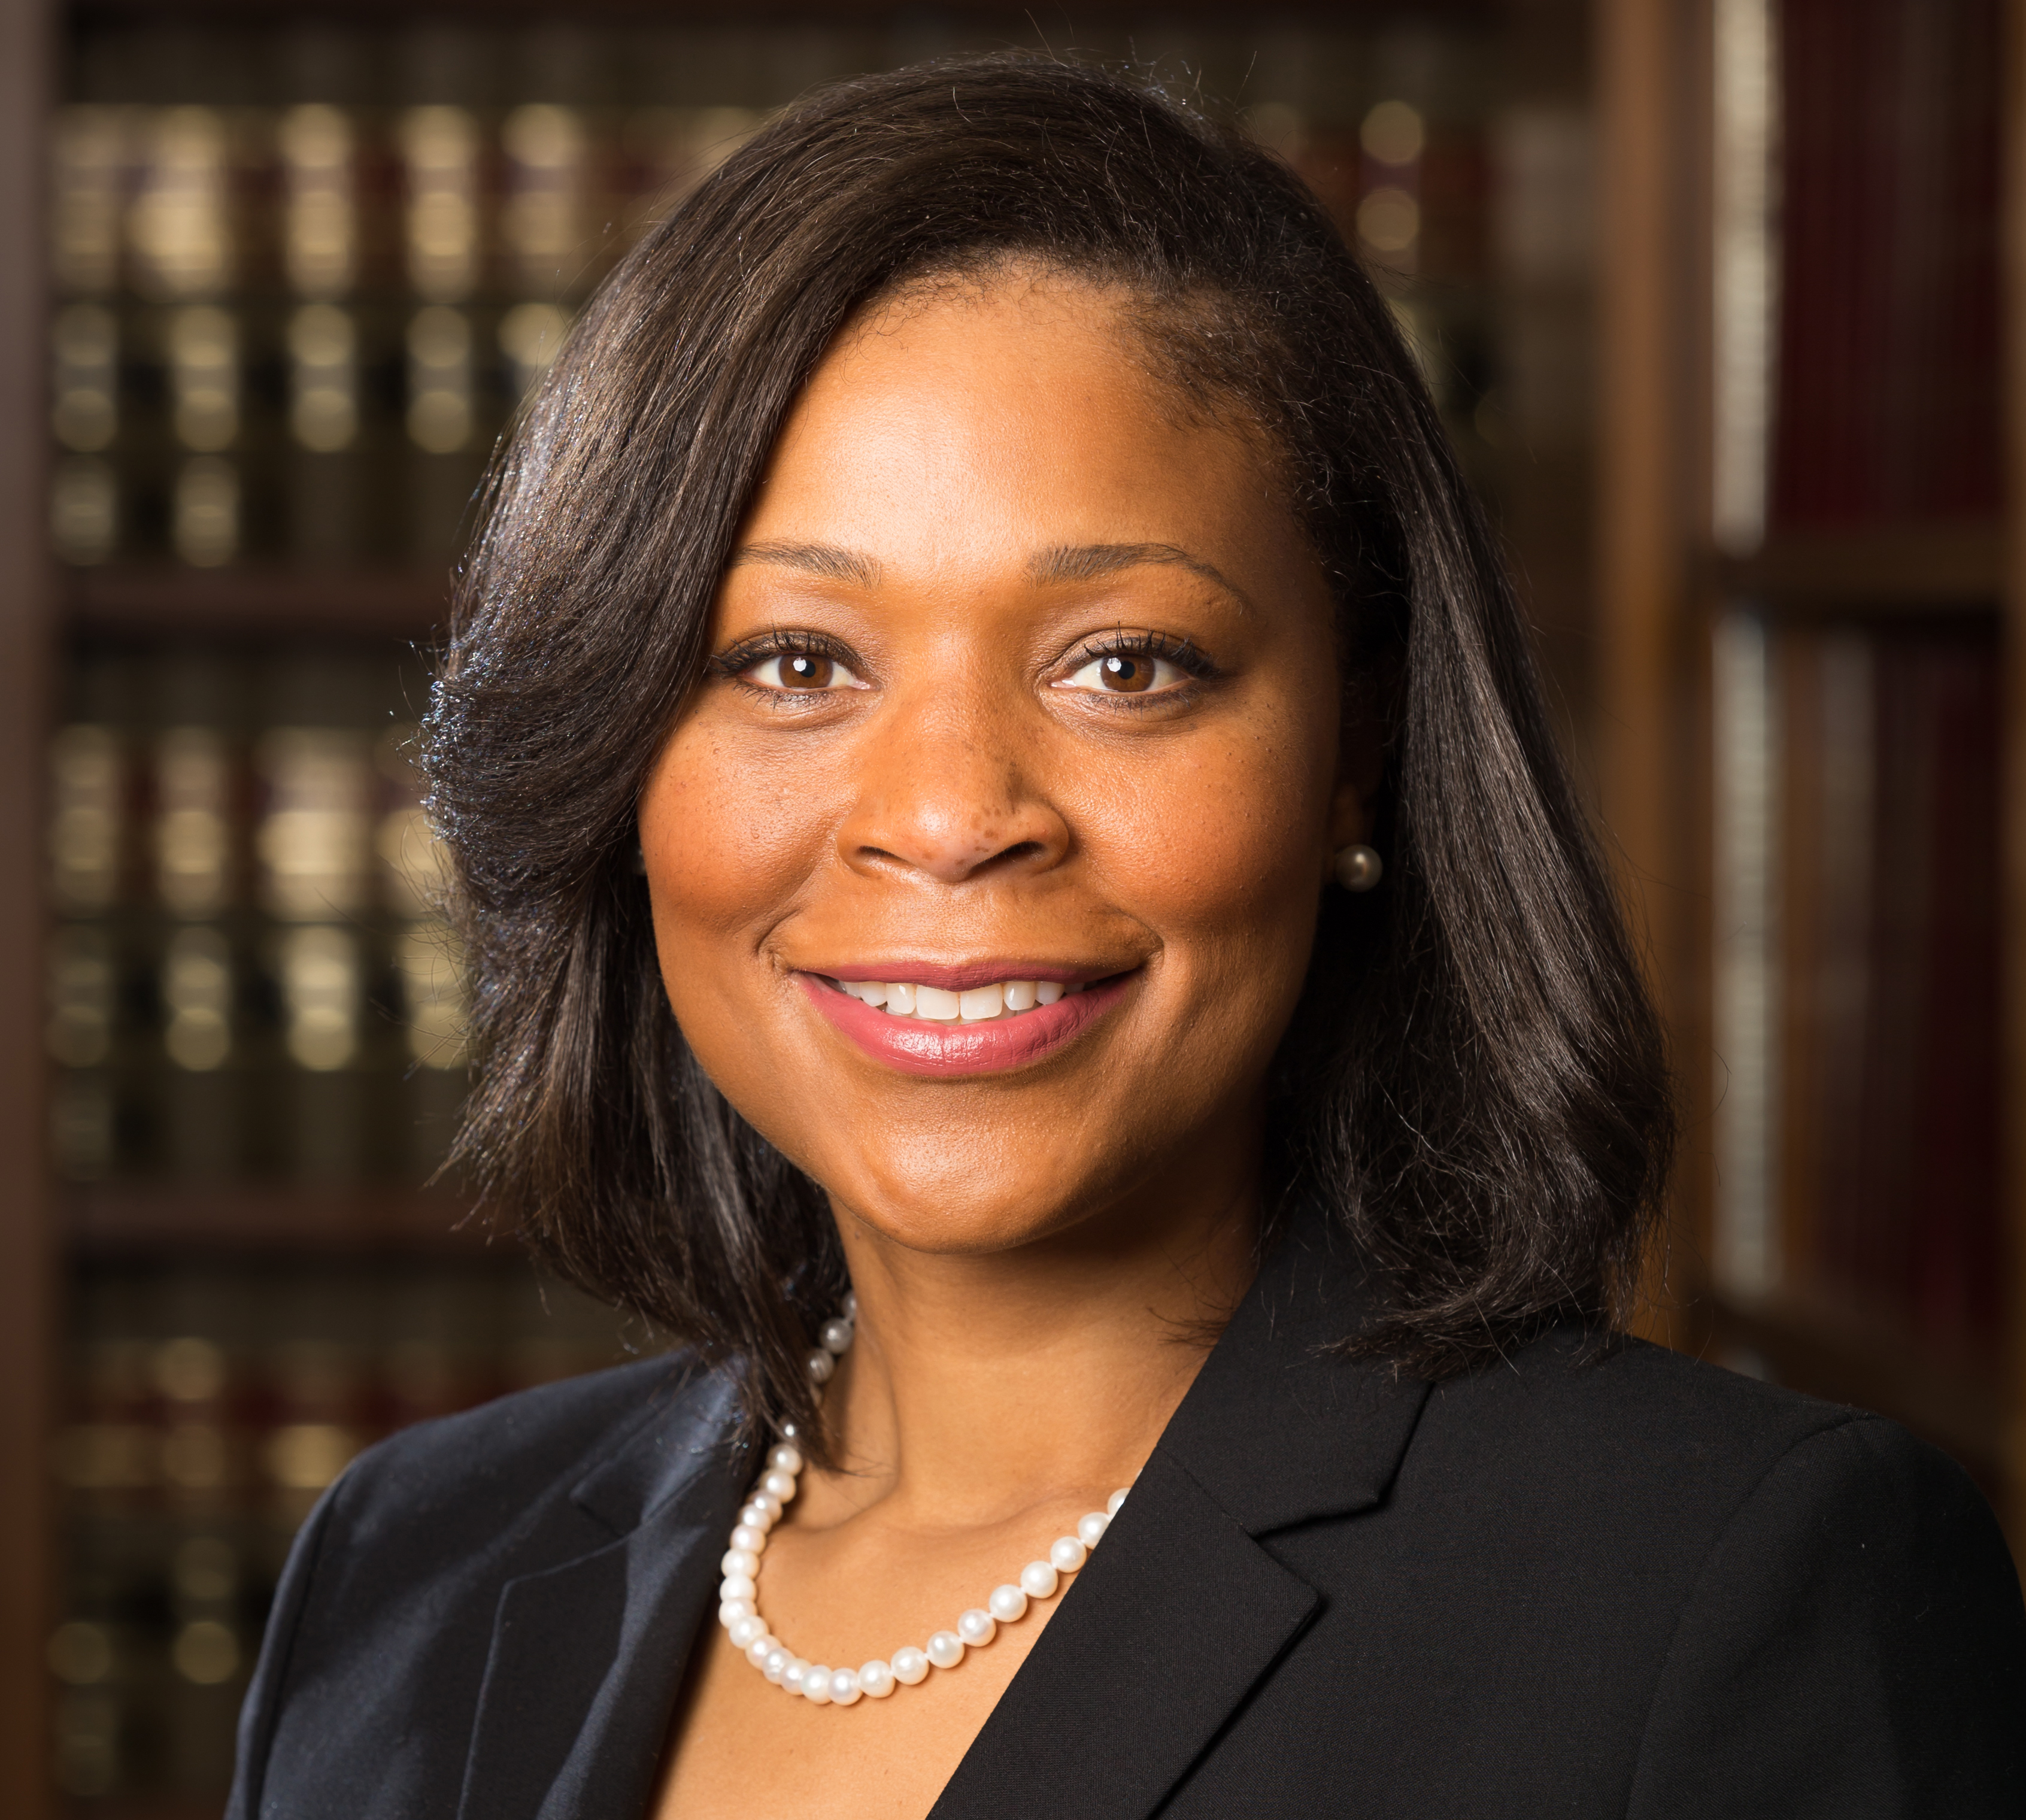 Commissioner Kimberly A. O'Guinn